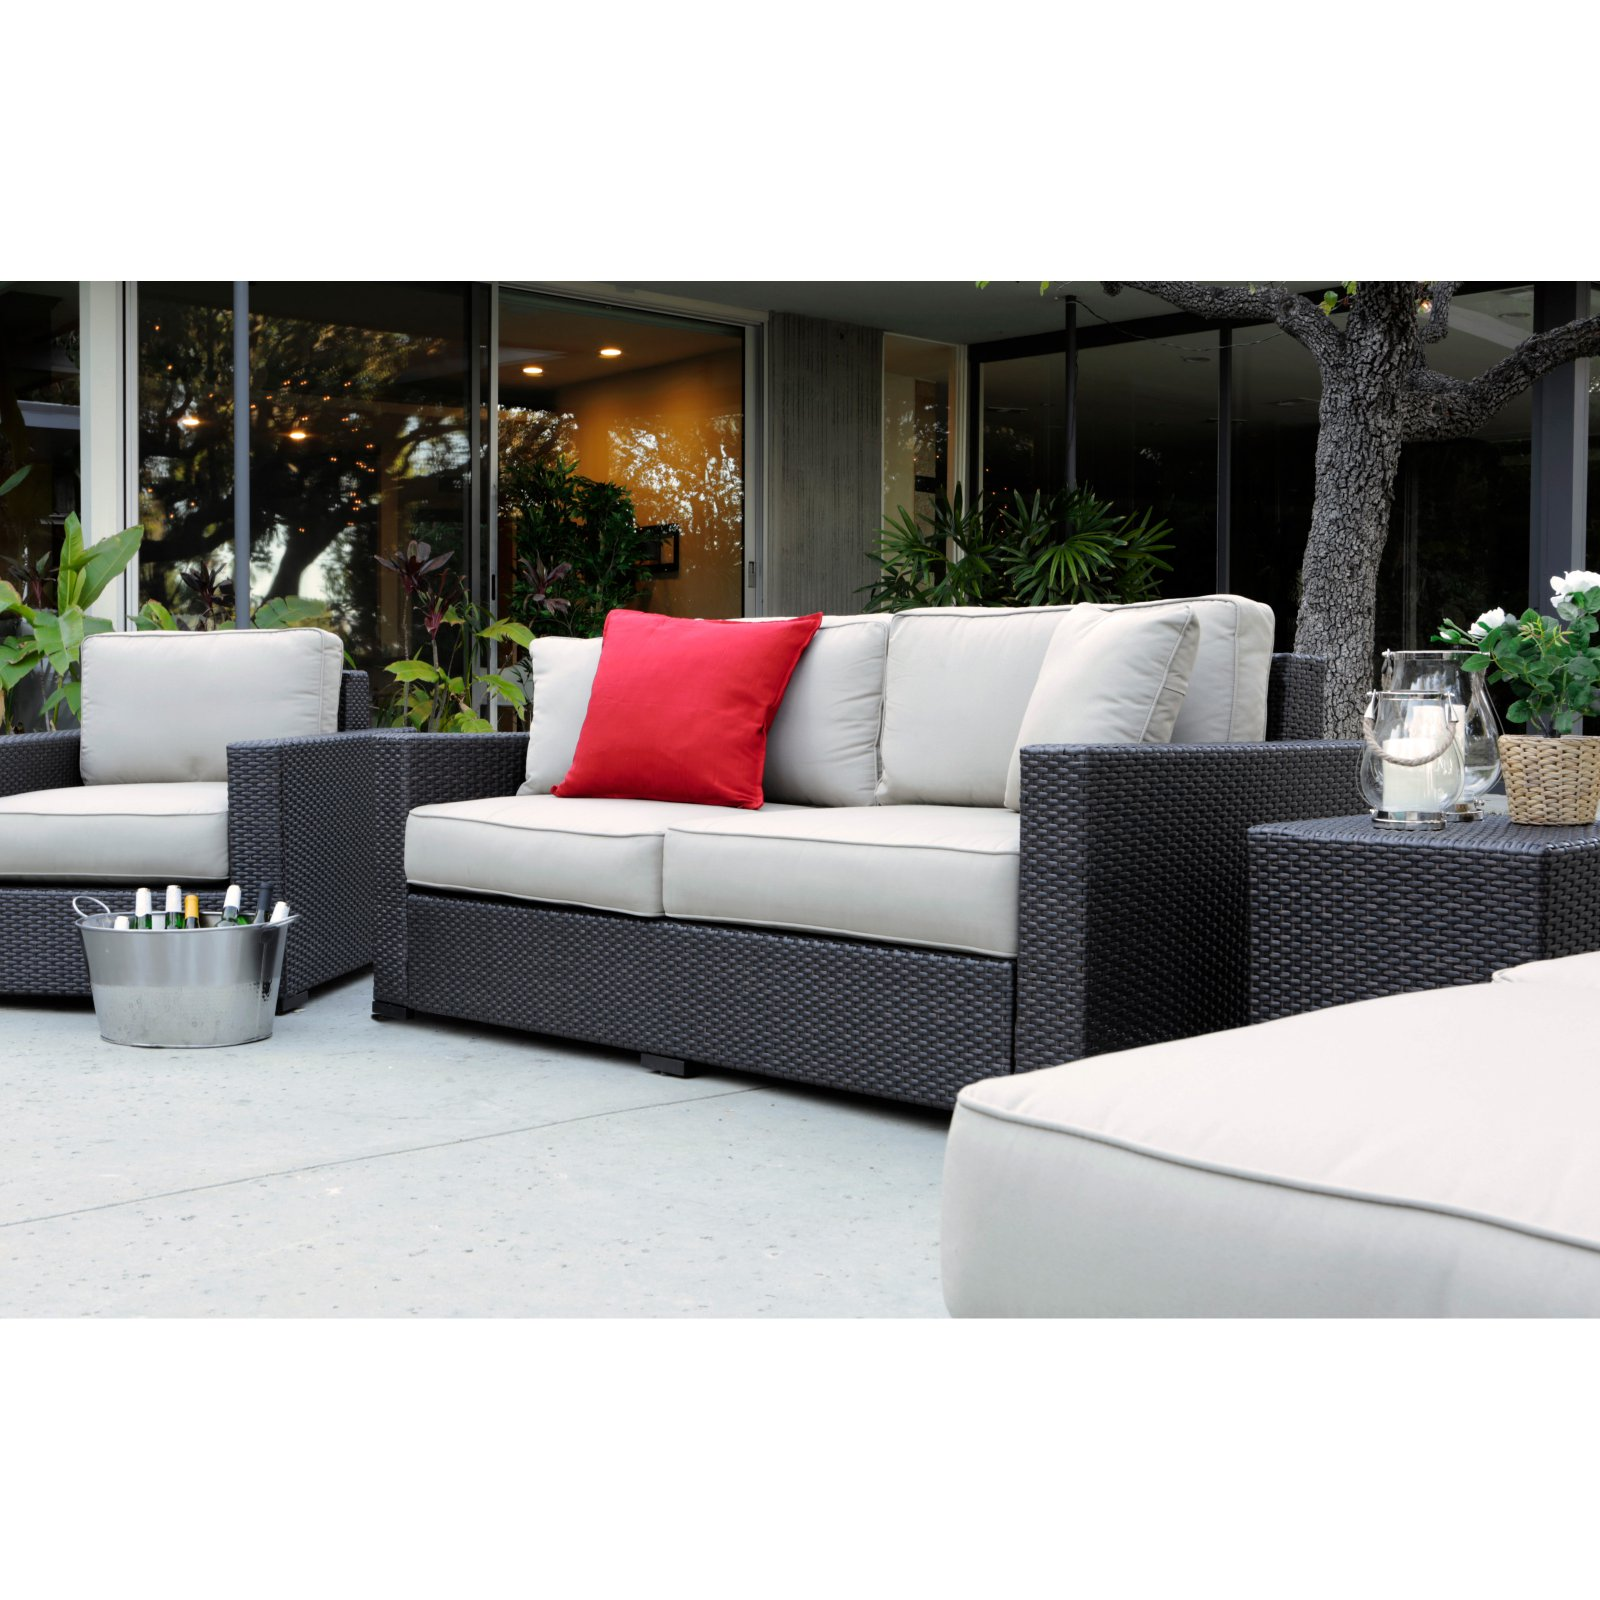 Wondrous Serta Laguna Outdoor Sofa Brown Wicker Caraccident5 Cool Chair Designs And Ideas Caraccident5Info